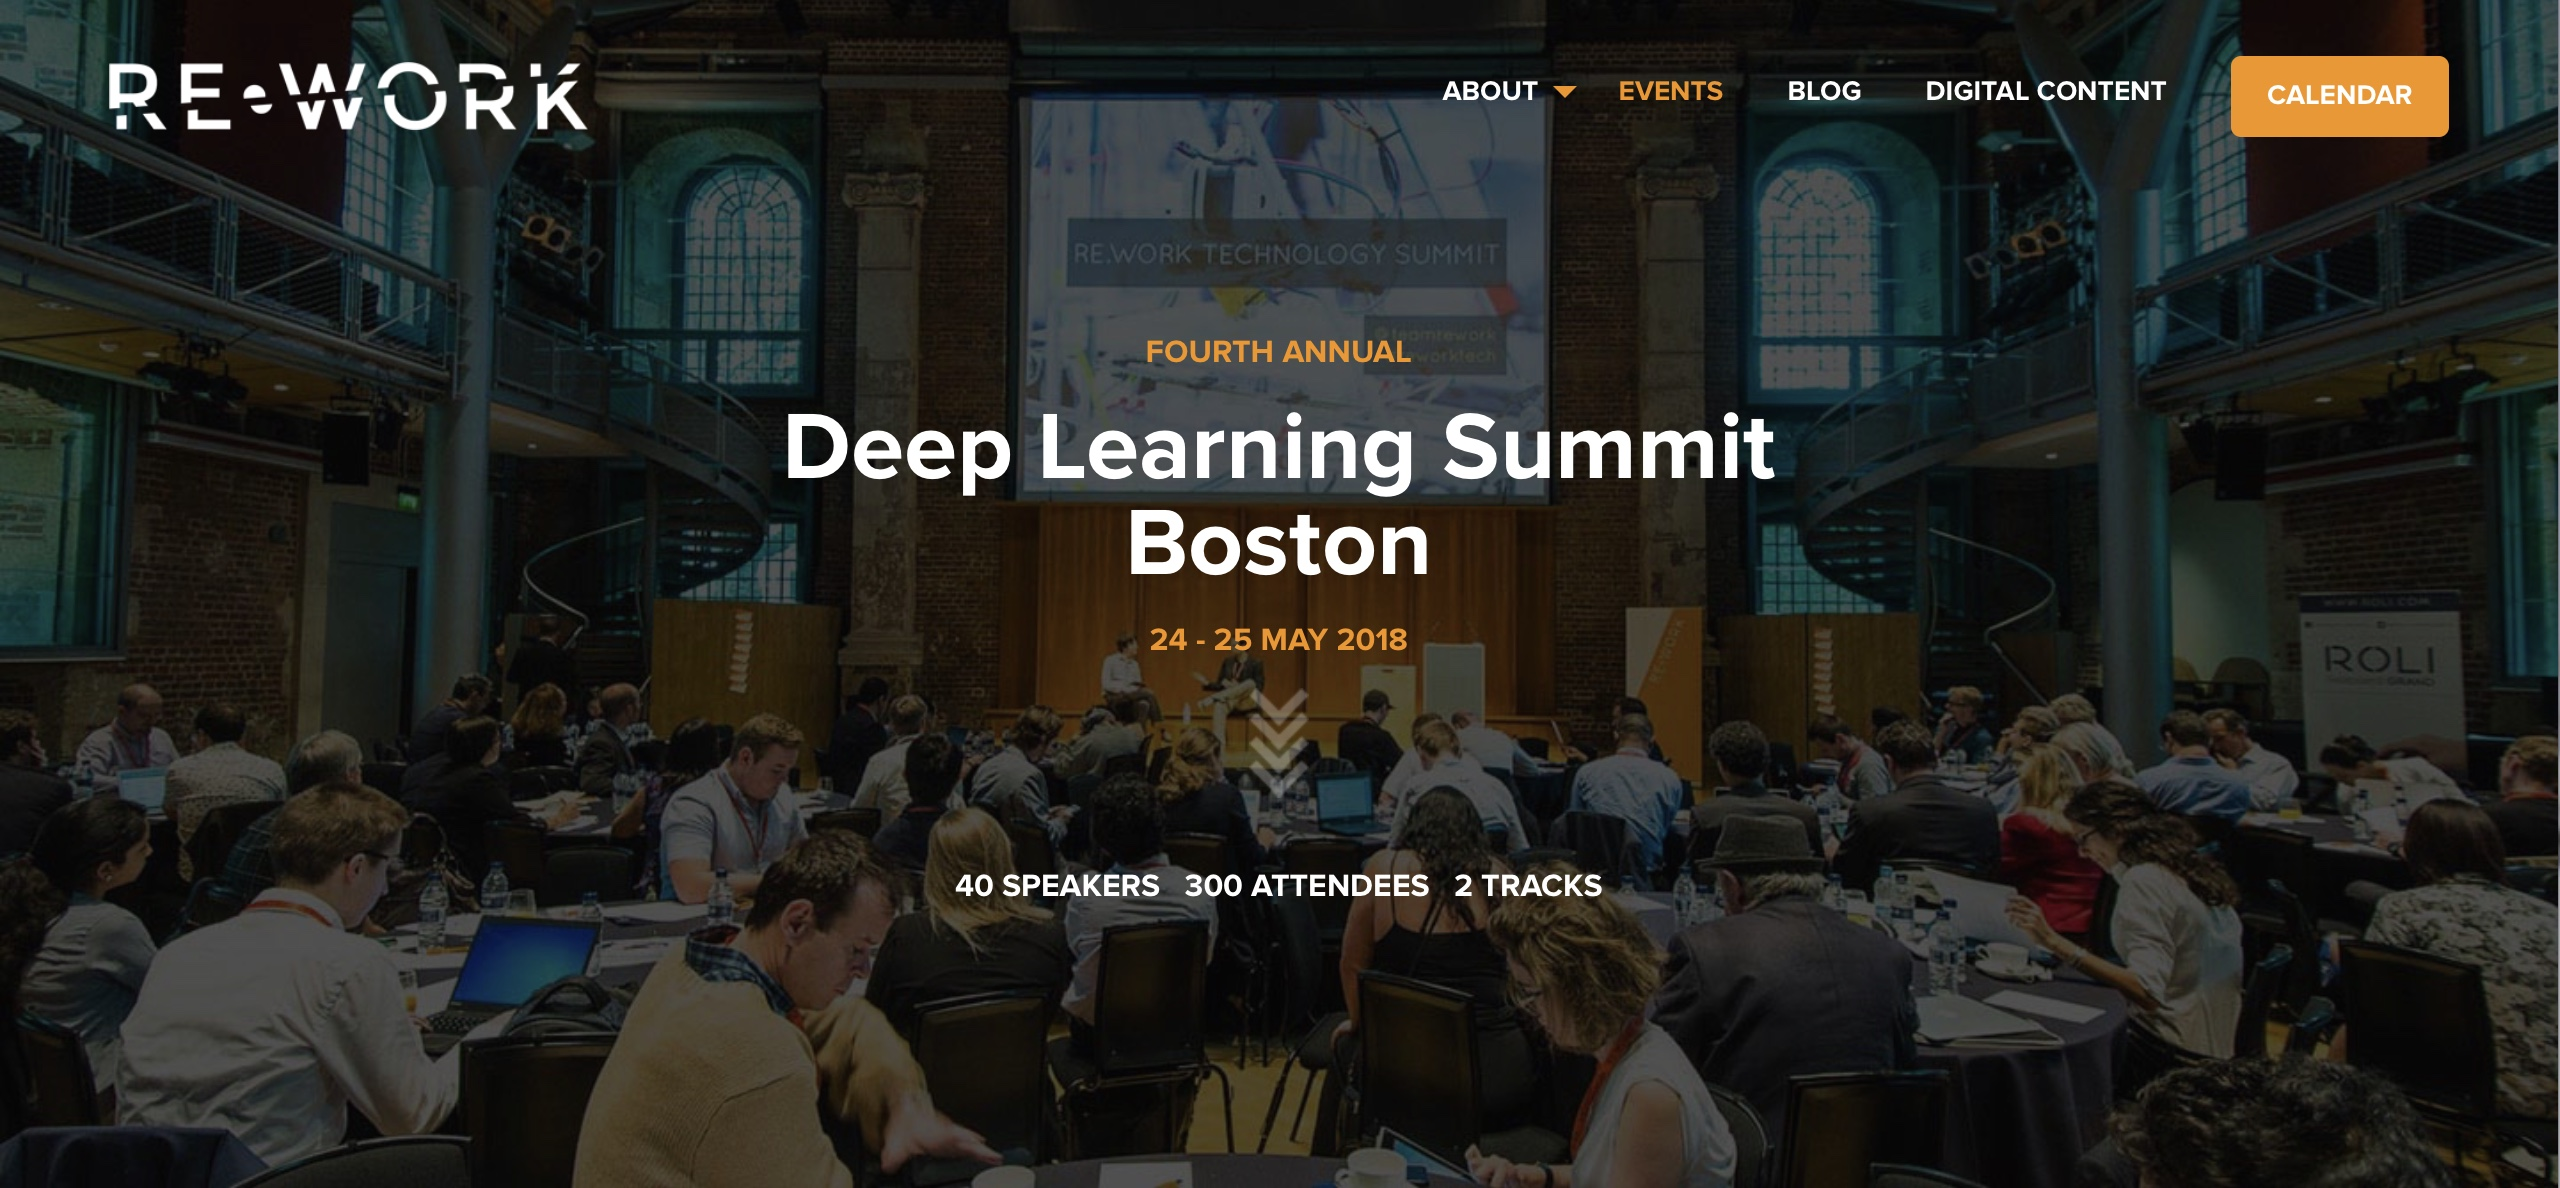 Boston, Re-Work Deep Learning Summit – 24-25.5.2018